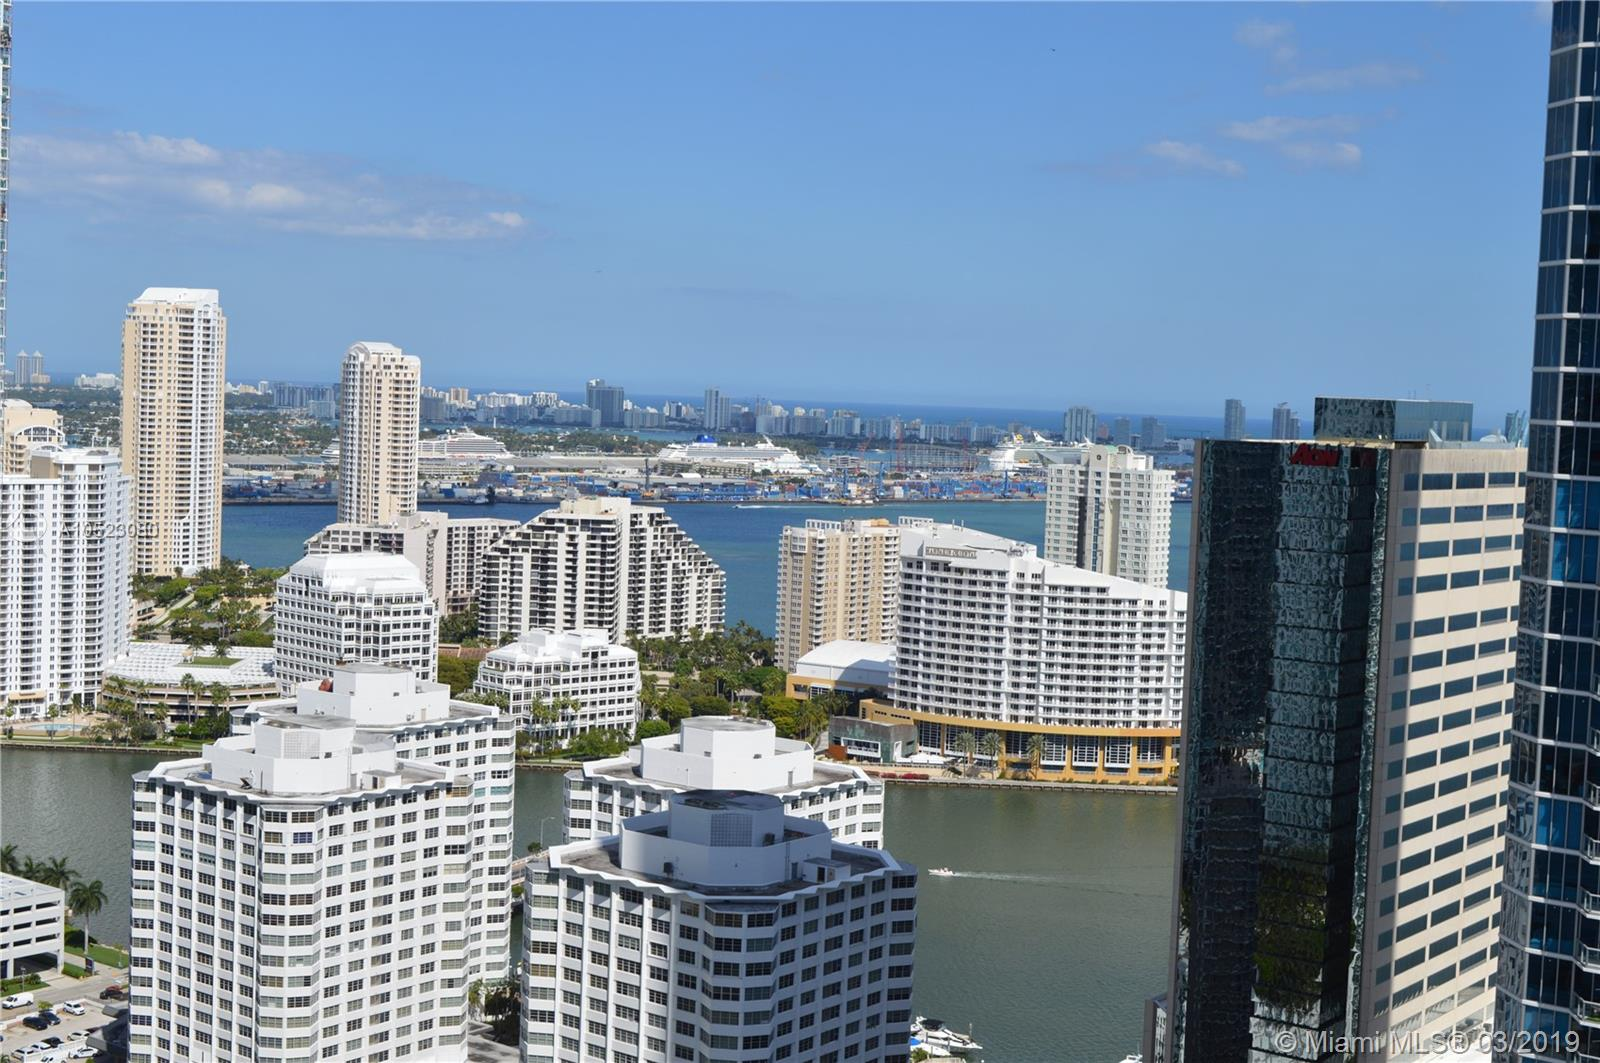 Great Opportunity!!! Beautiful apartment in the heart of Brickell Avenue. Amazing stunning City & Bay views. 2 Bed/ 2.5 Baths , excellent conditions.Security 24 hours,1 Parking plus Valet.Close to excellent Restaurants, Shopping,Entertainment near Mary Brickell Village,Brickell City Center and Express Way, one of a kind!!!The Association fee include :Basic Cable,Water and Fumigation